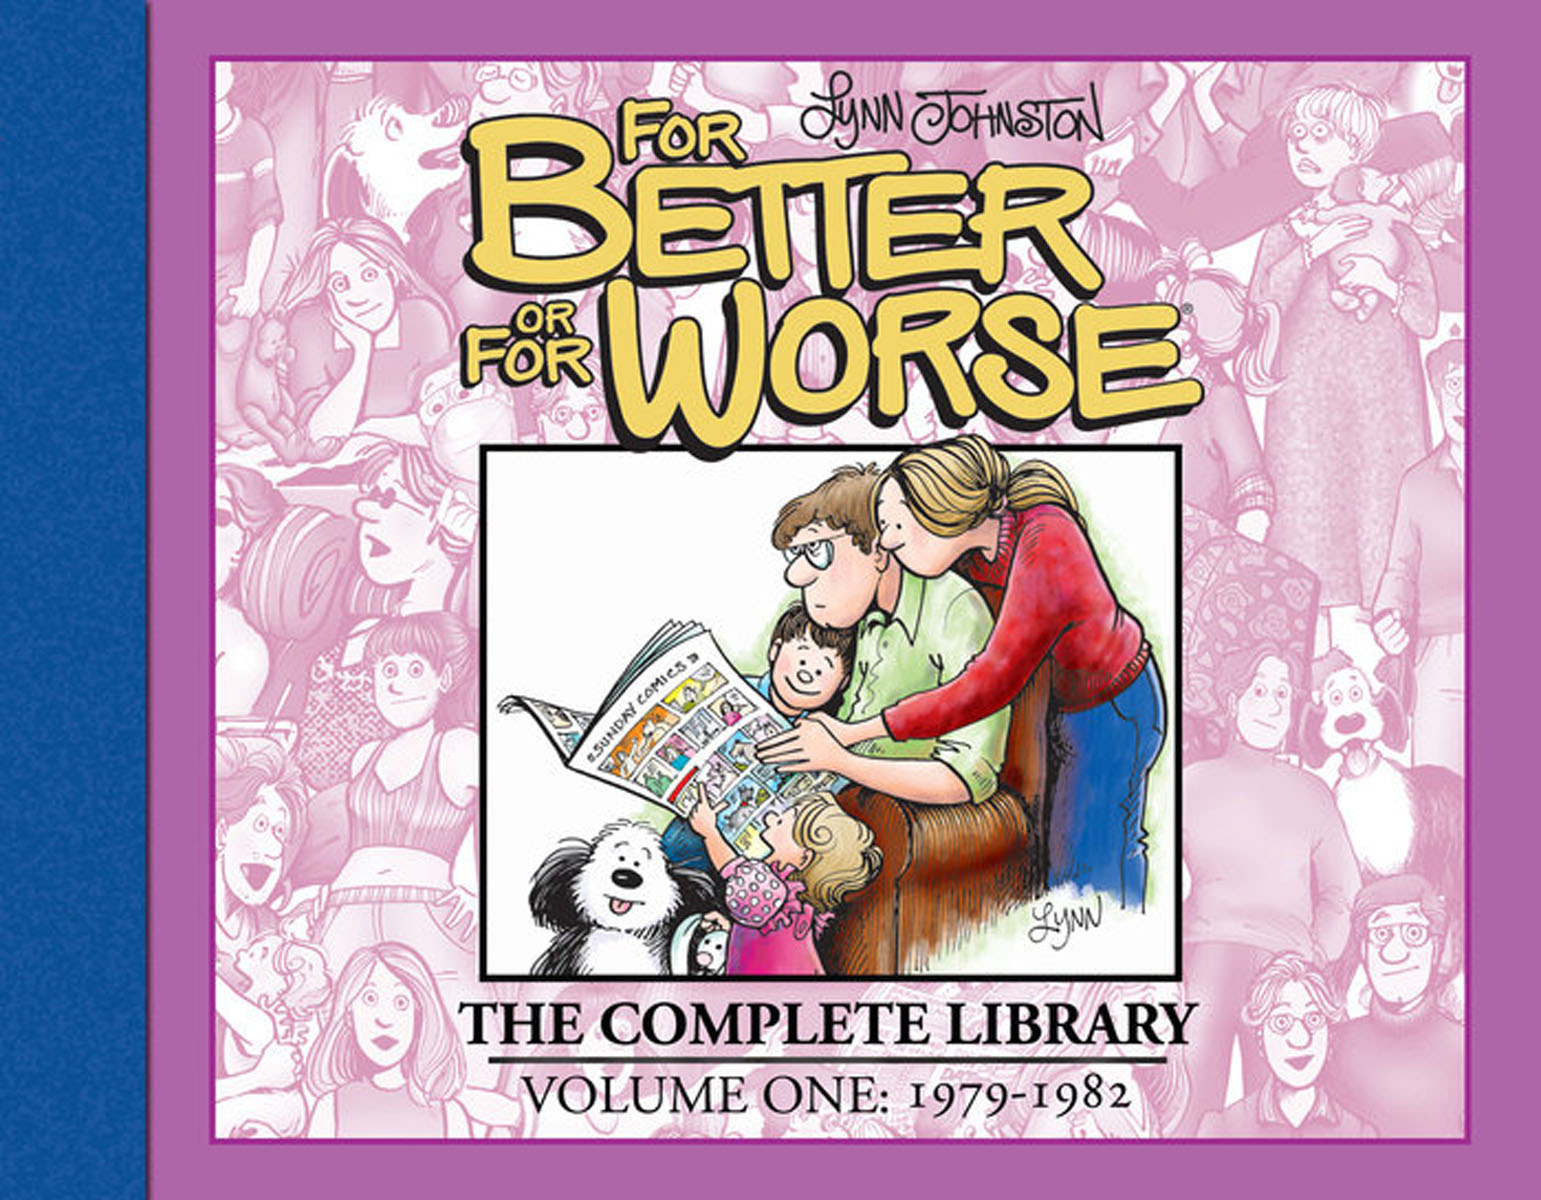 For Better or For Worse: The Complete Library, Vol. 1 powers the definitive hardcover collection vol 7